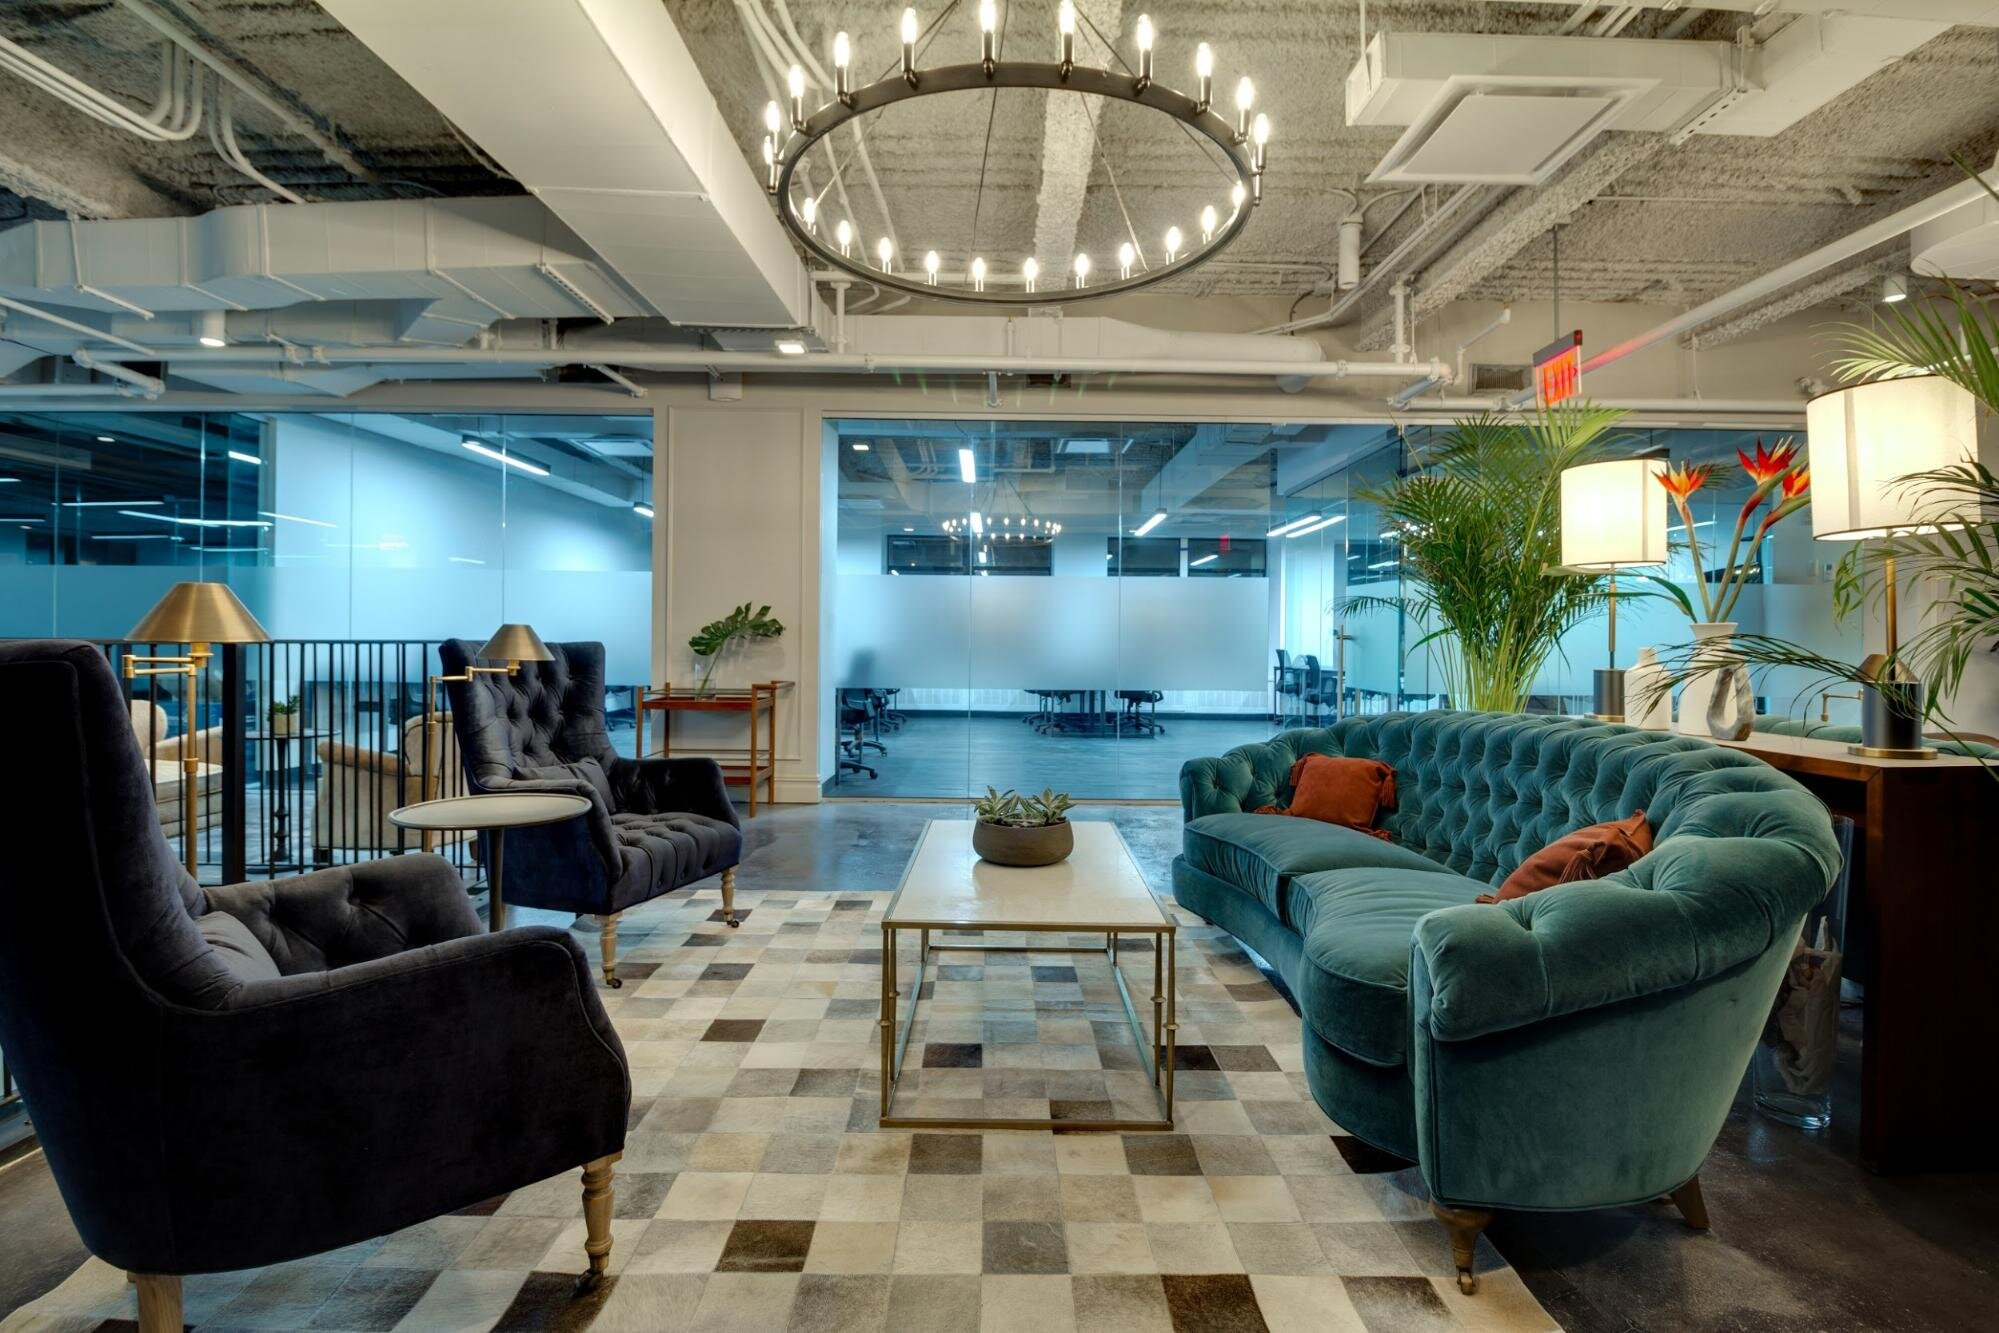 hybrid workplace casual hang out space with couch and coffee table